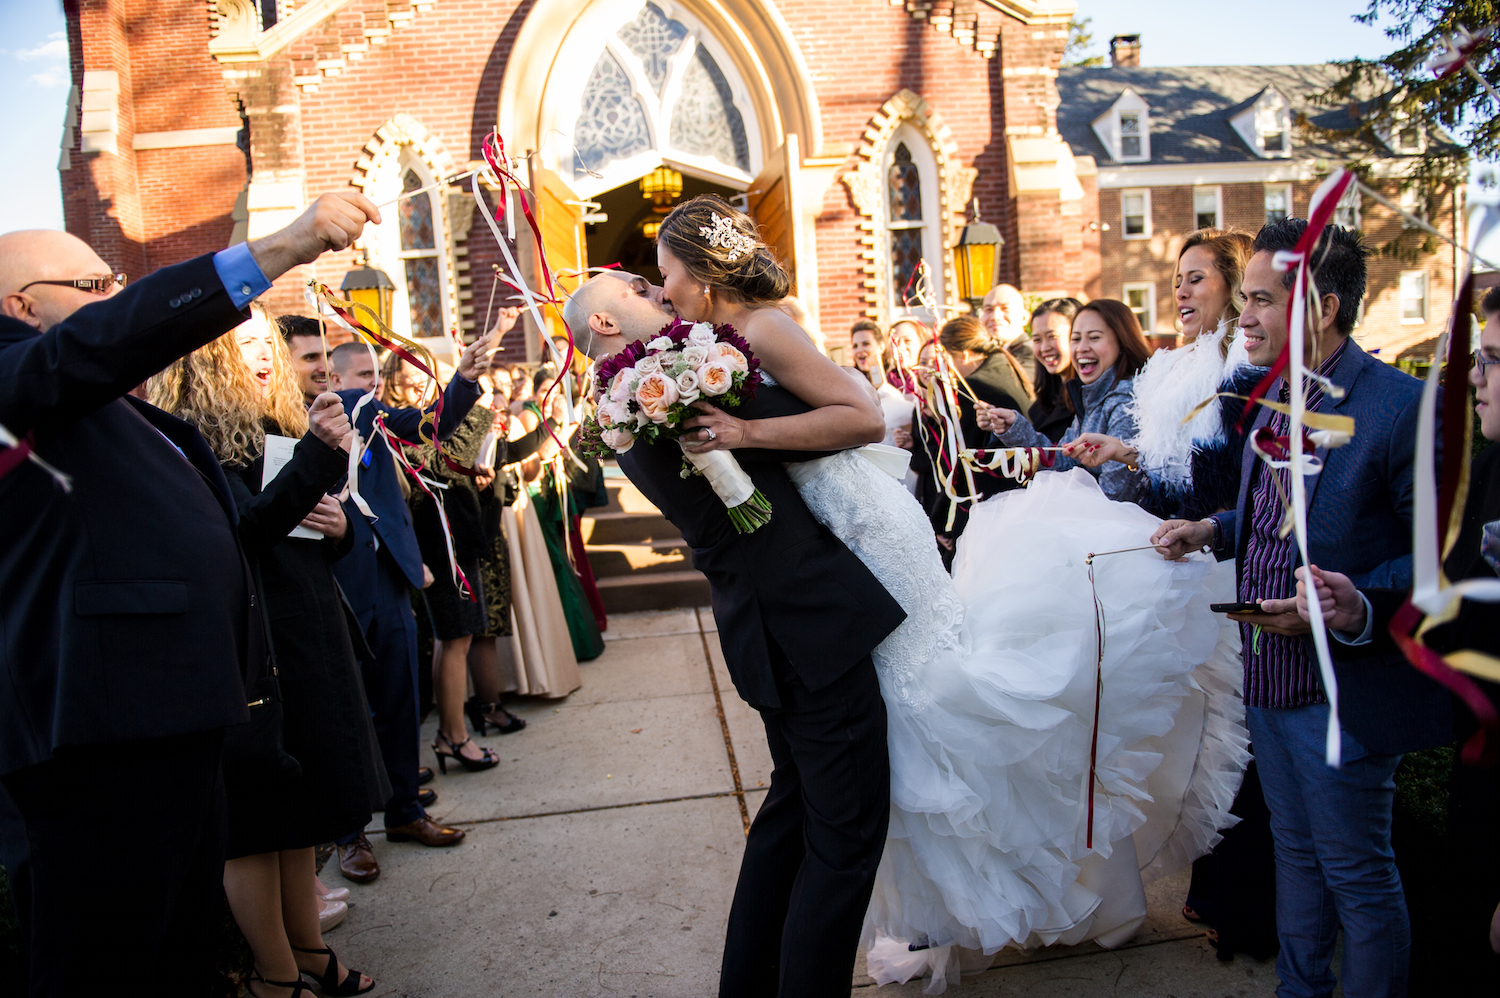 lean&frank-kissing-outside-church-surrounded-by-cheering-guests-nj-wedding-photos